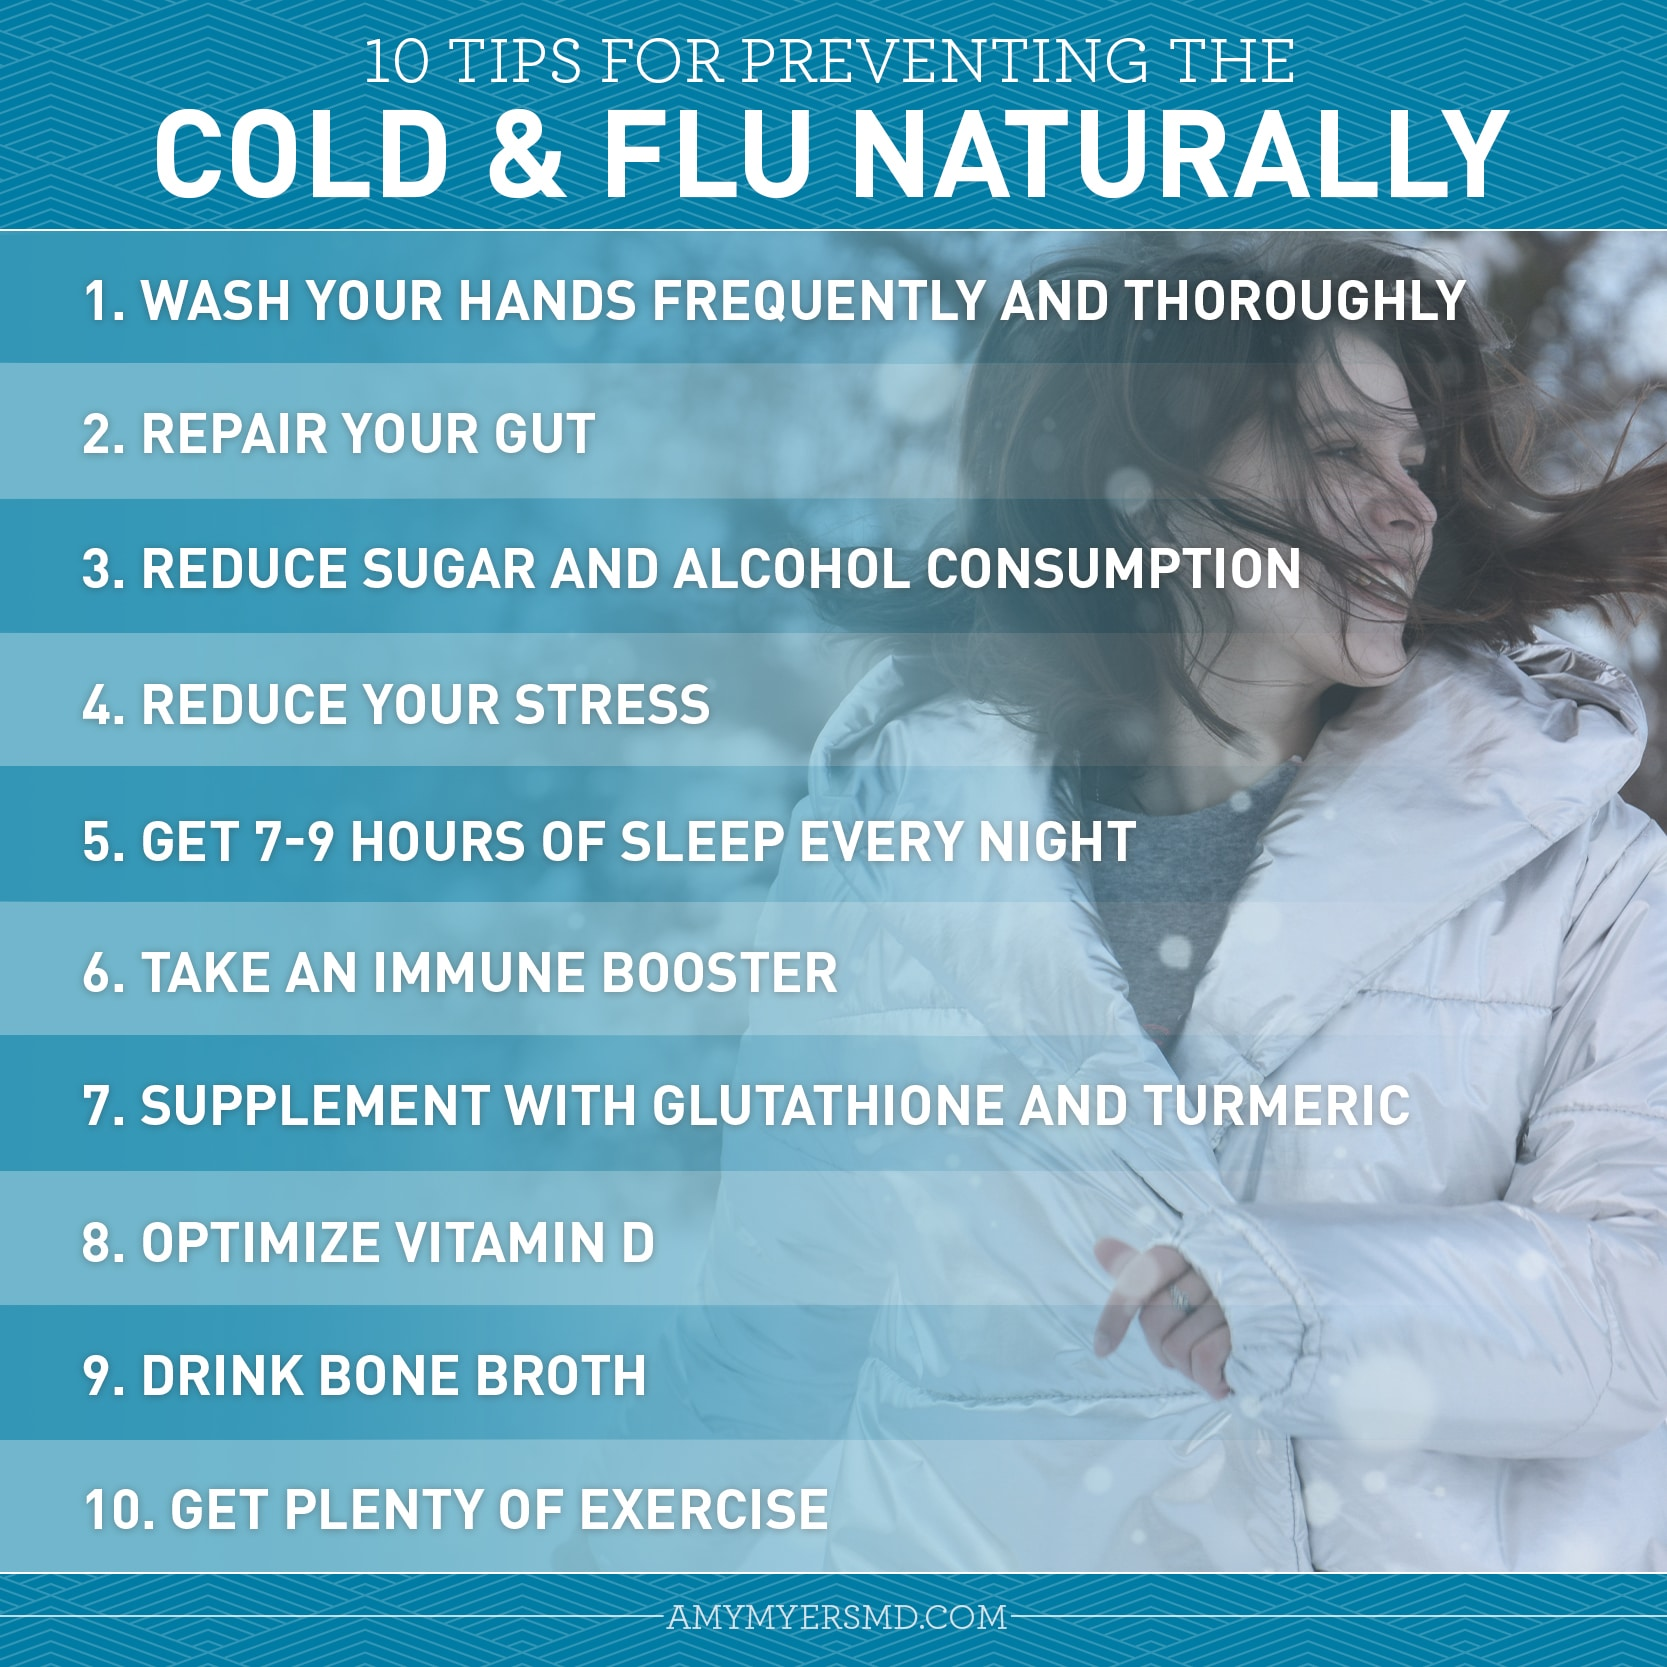 10 Tips for Preventing the Cold & Flu Naturally - Infographic - Amy Myers MD